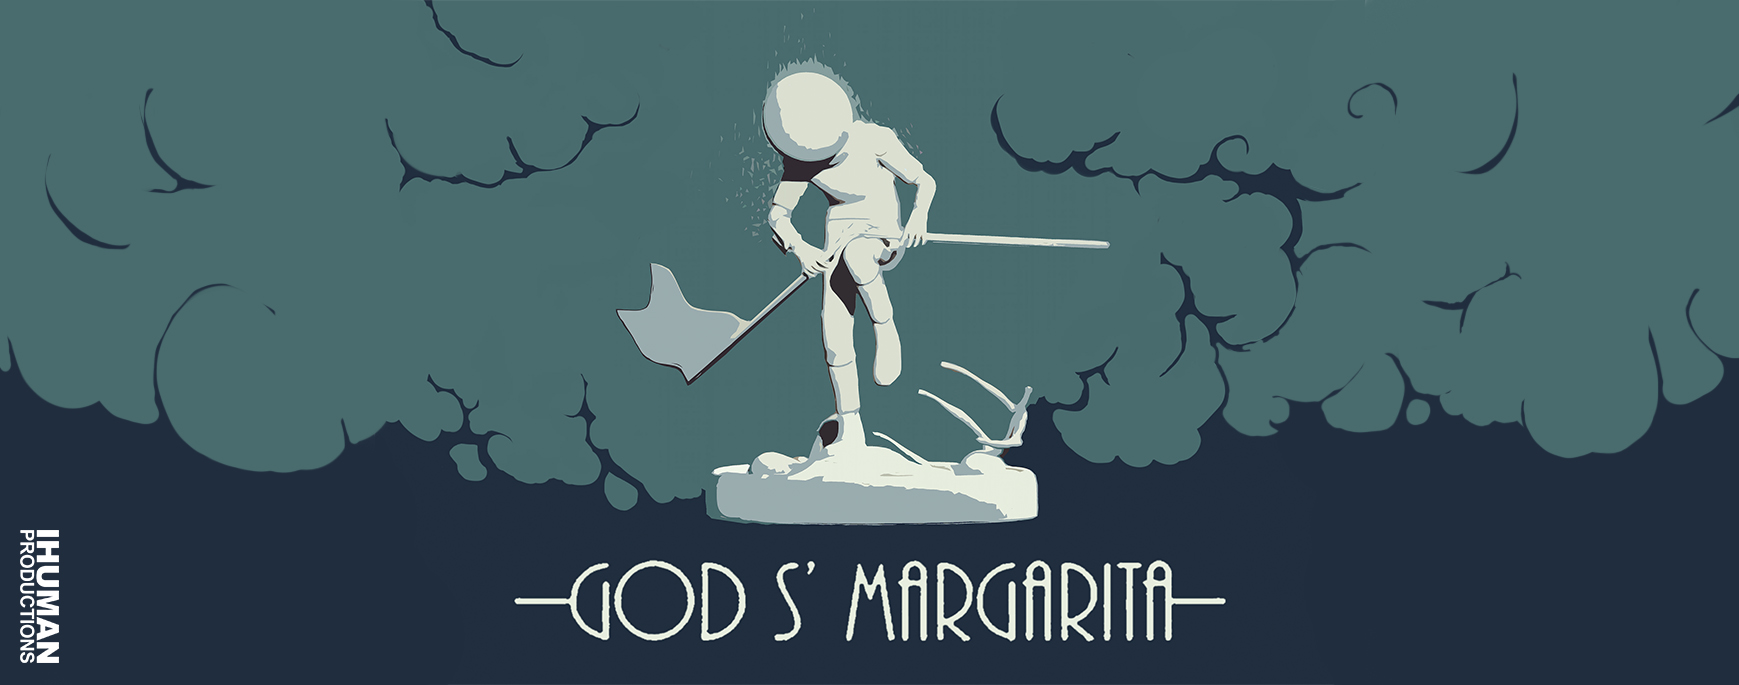 God s' Margarita